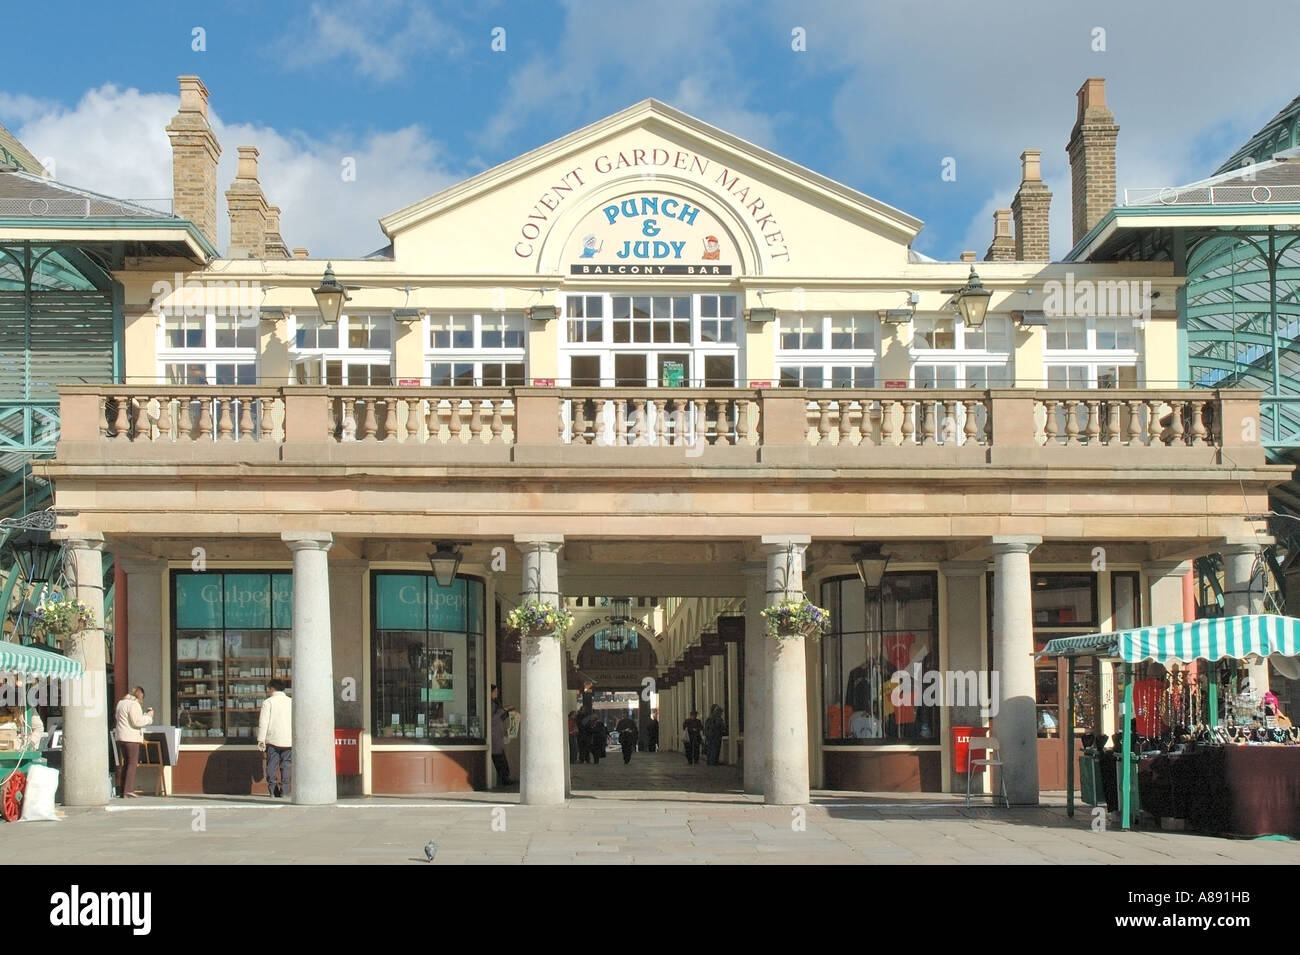 Punch And Judy Pub Covent Garden Market Historical Architecture Stock Photo Royalty Free Image ...